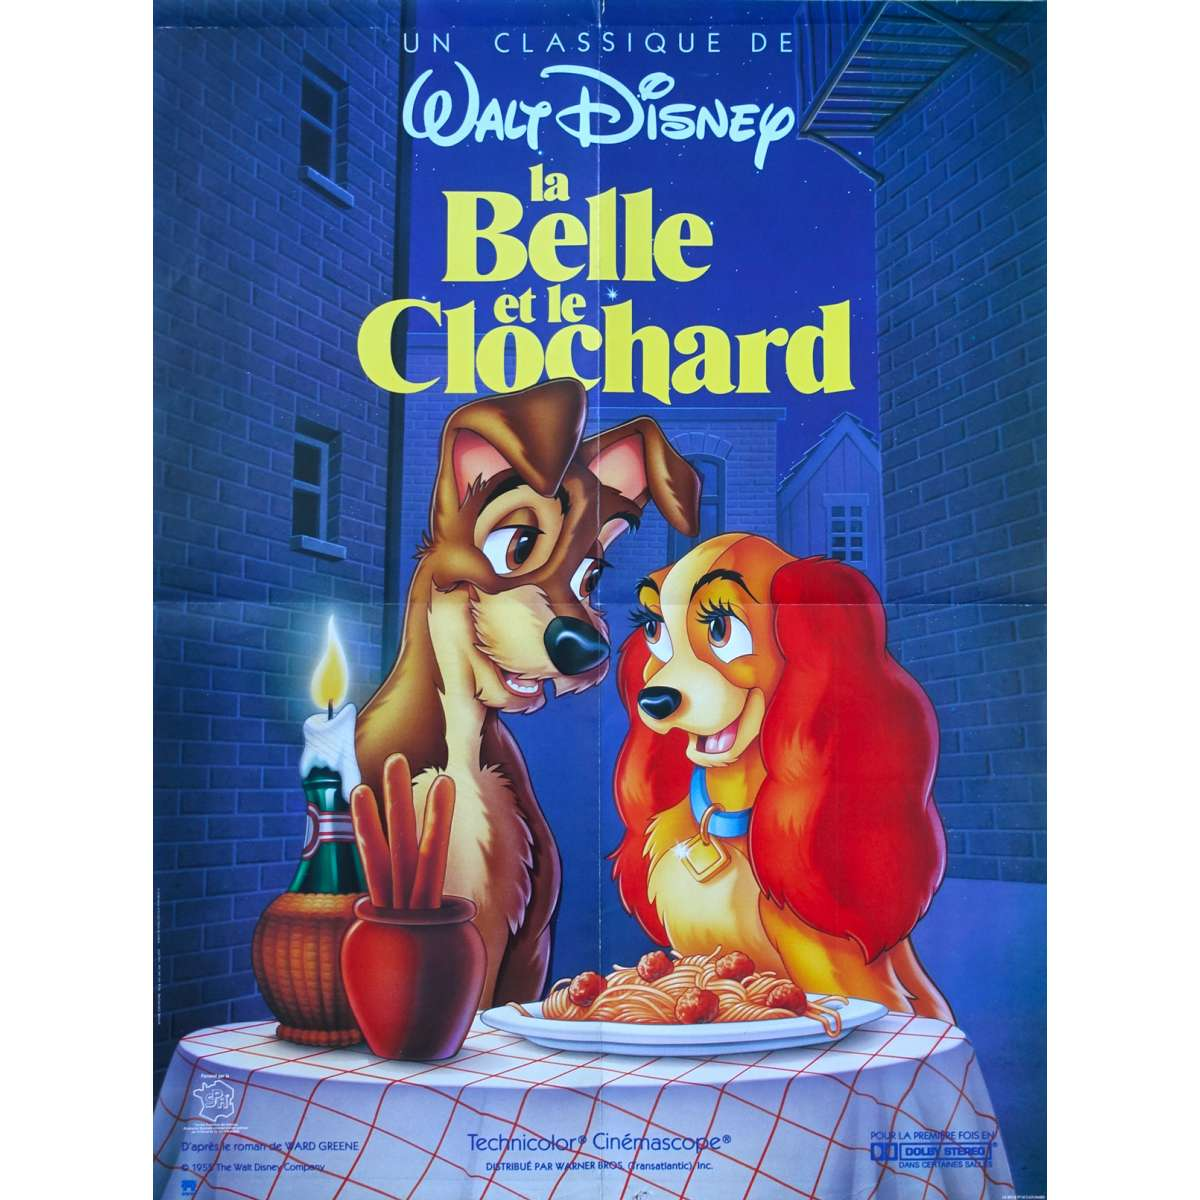 Lady And The Tramp Movie Poster 23x32 In